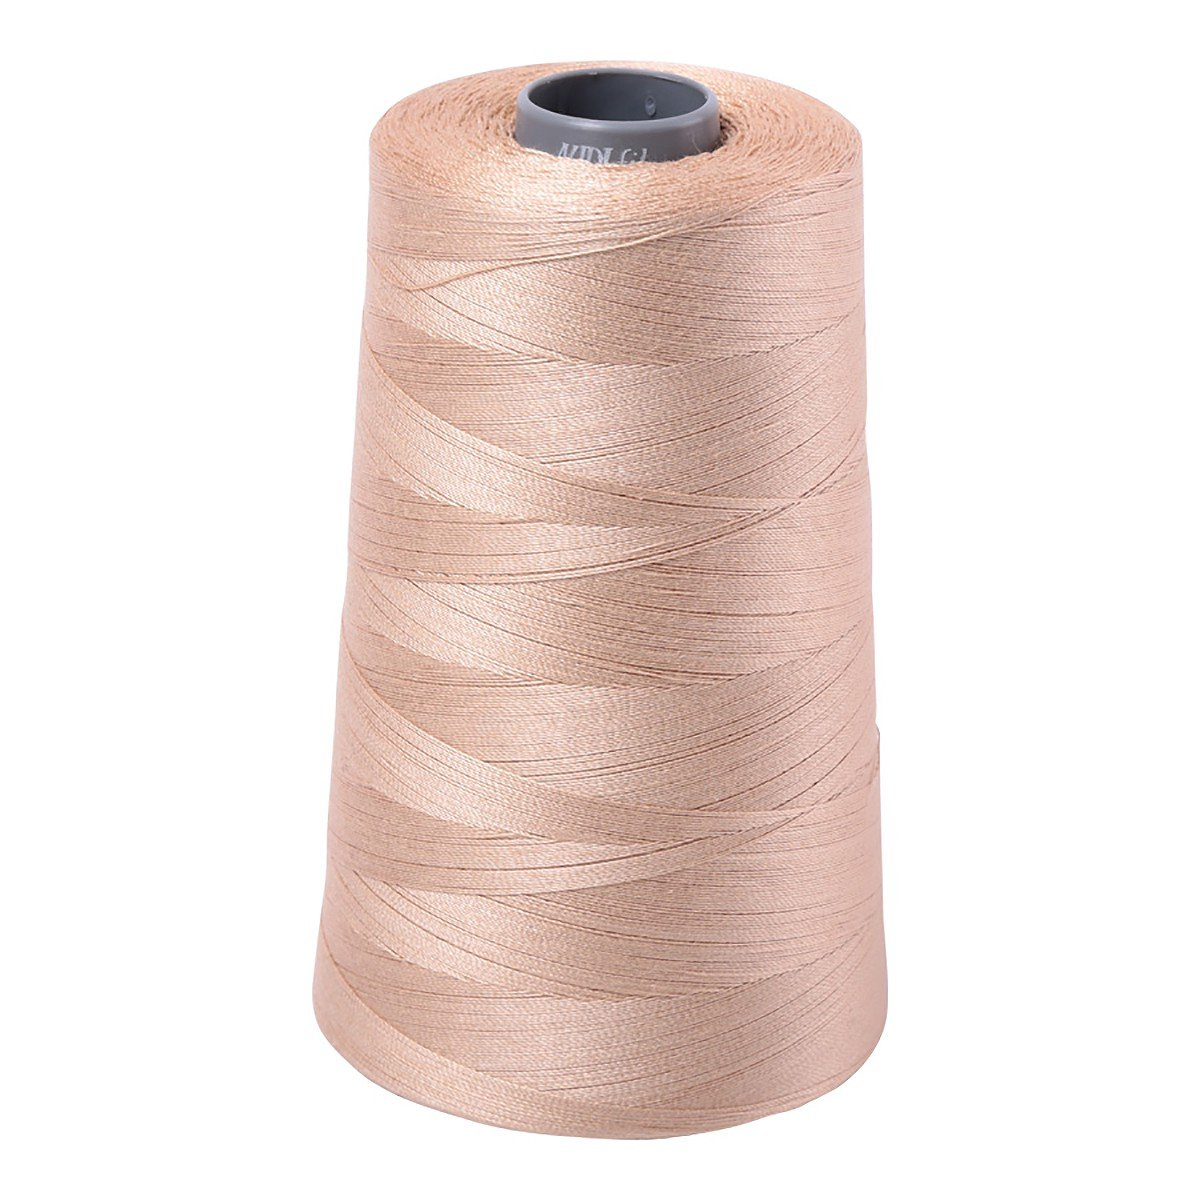 Mako (Cotton) Embroidery Thread 28wt 3609yds Beige